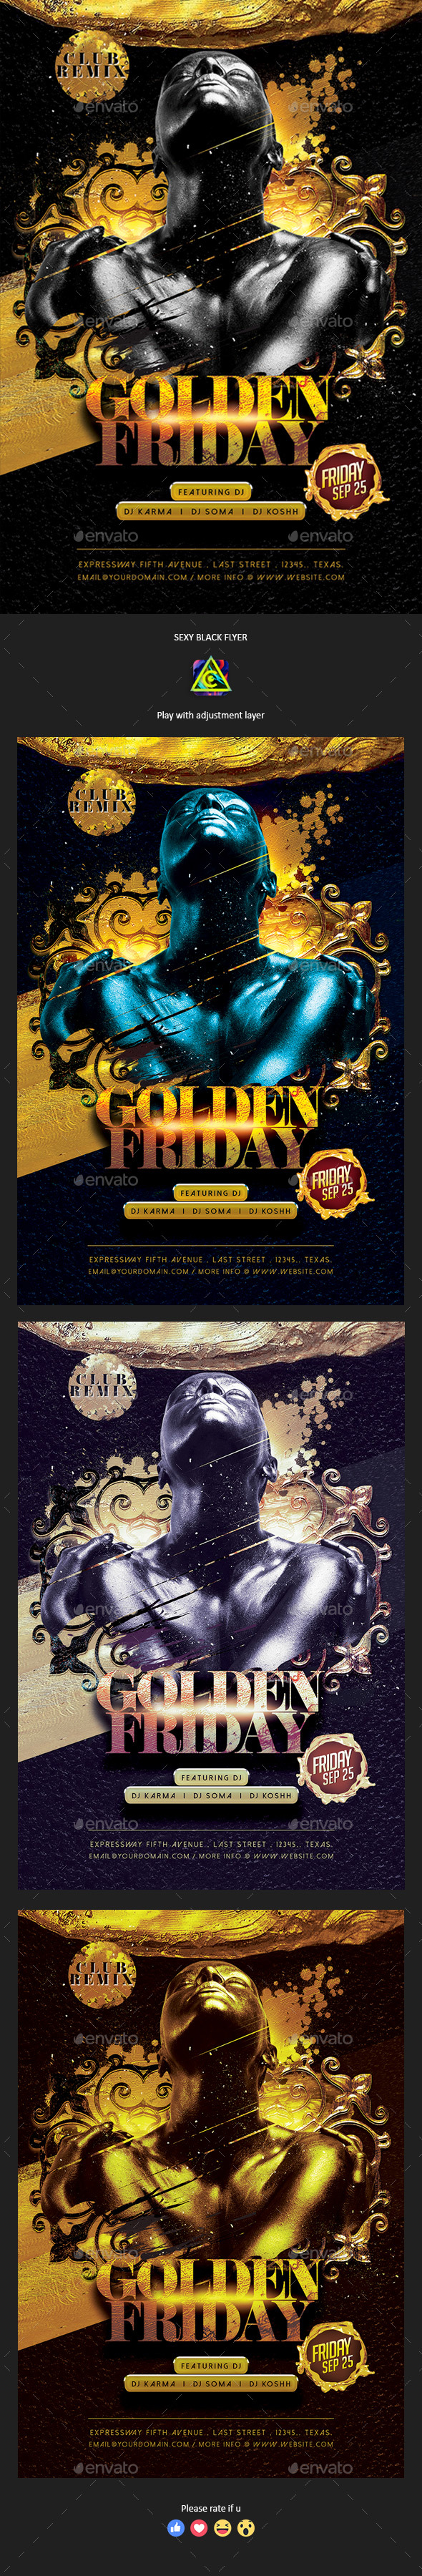 Golden Friday Flyer - Clubs & Parties Events